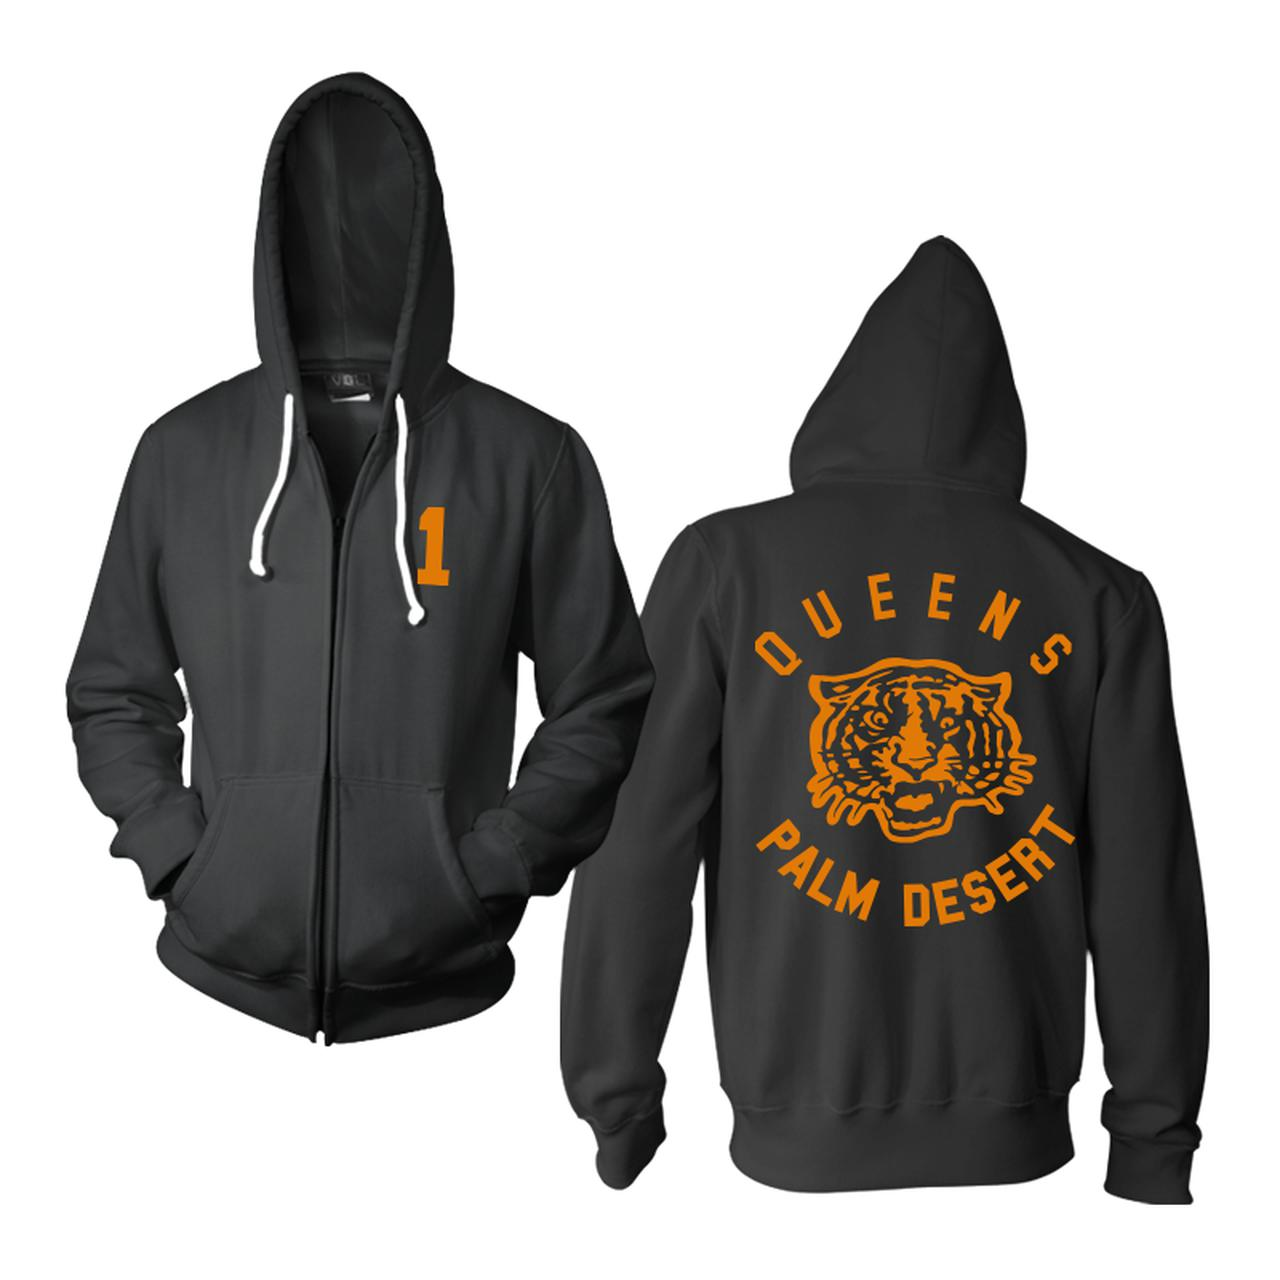 Queens of the stone age hoodie